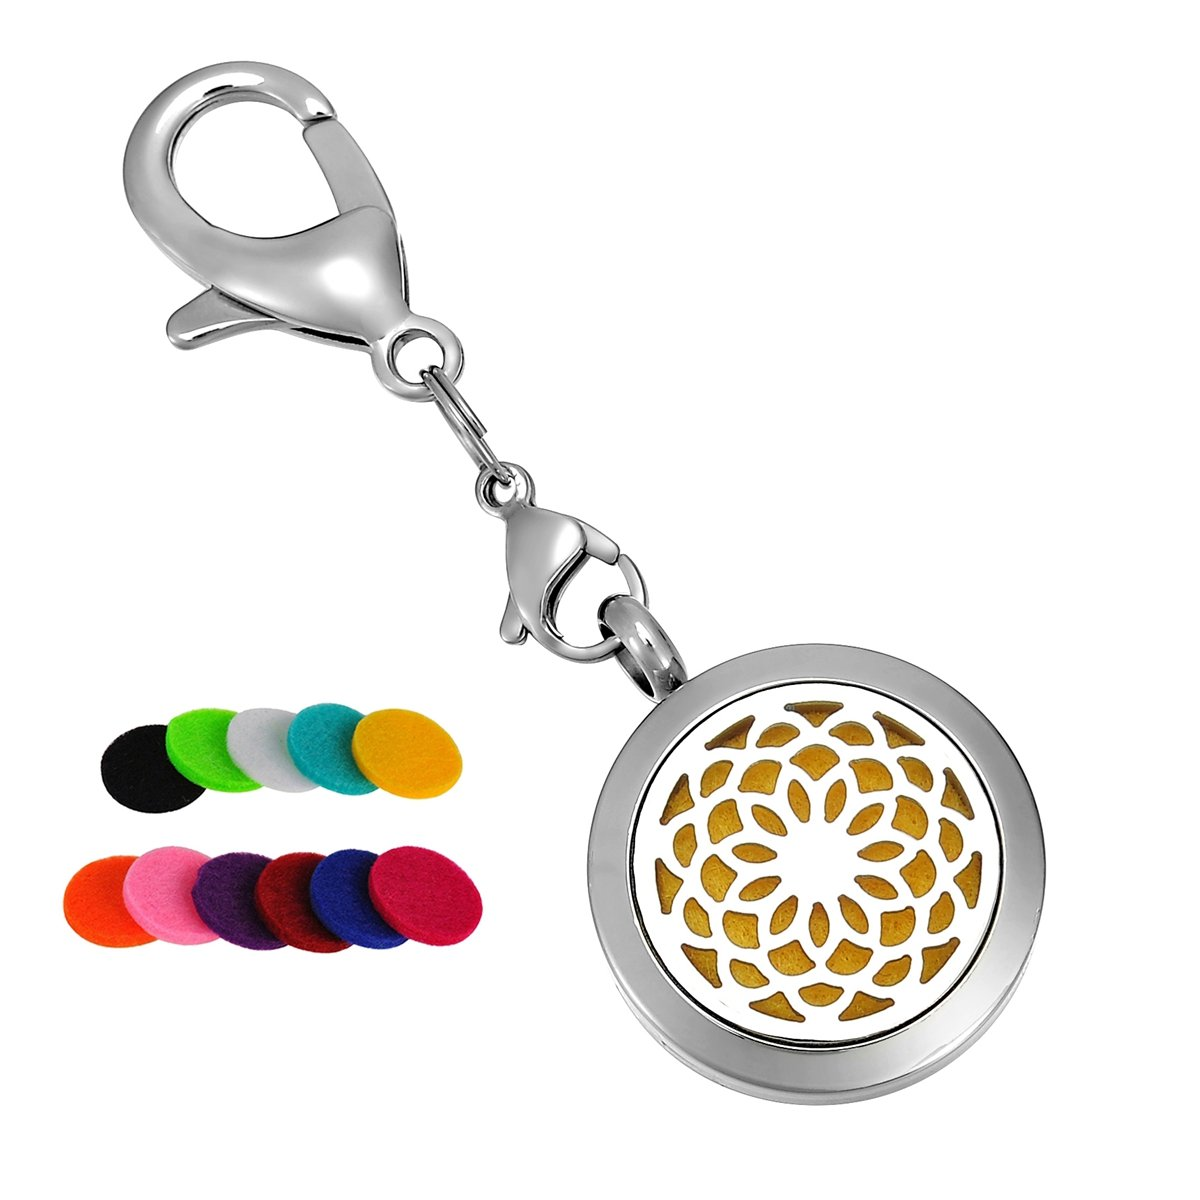 HooAMI Aromatherapy Essential Oil Diffuser necklace-stainlessスチールひまわりロケットペンダント、11 Refill Pads B01MXQSFUG